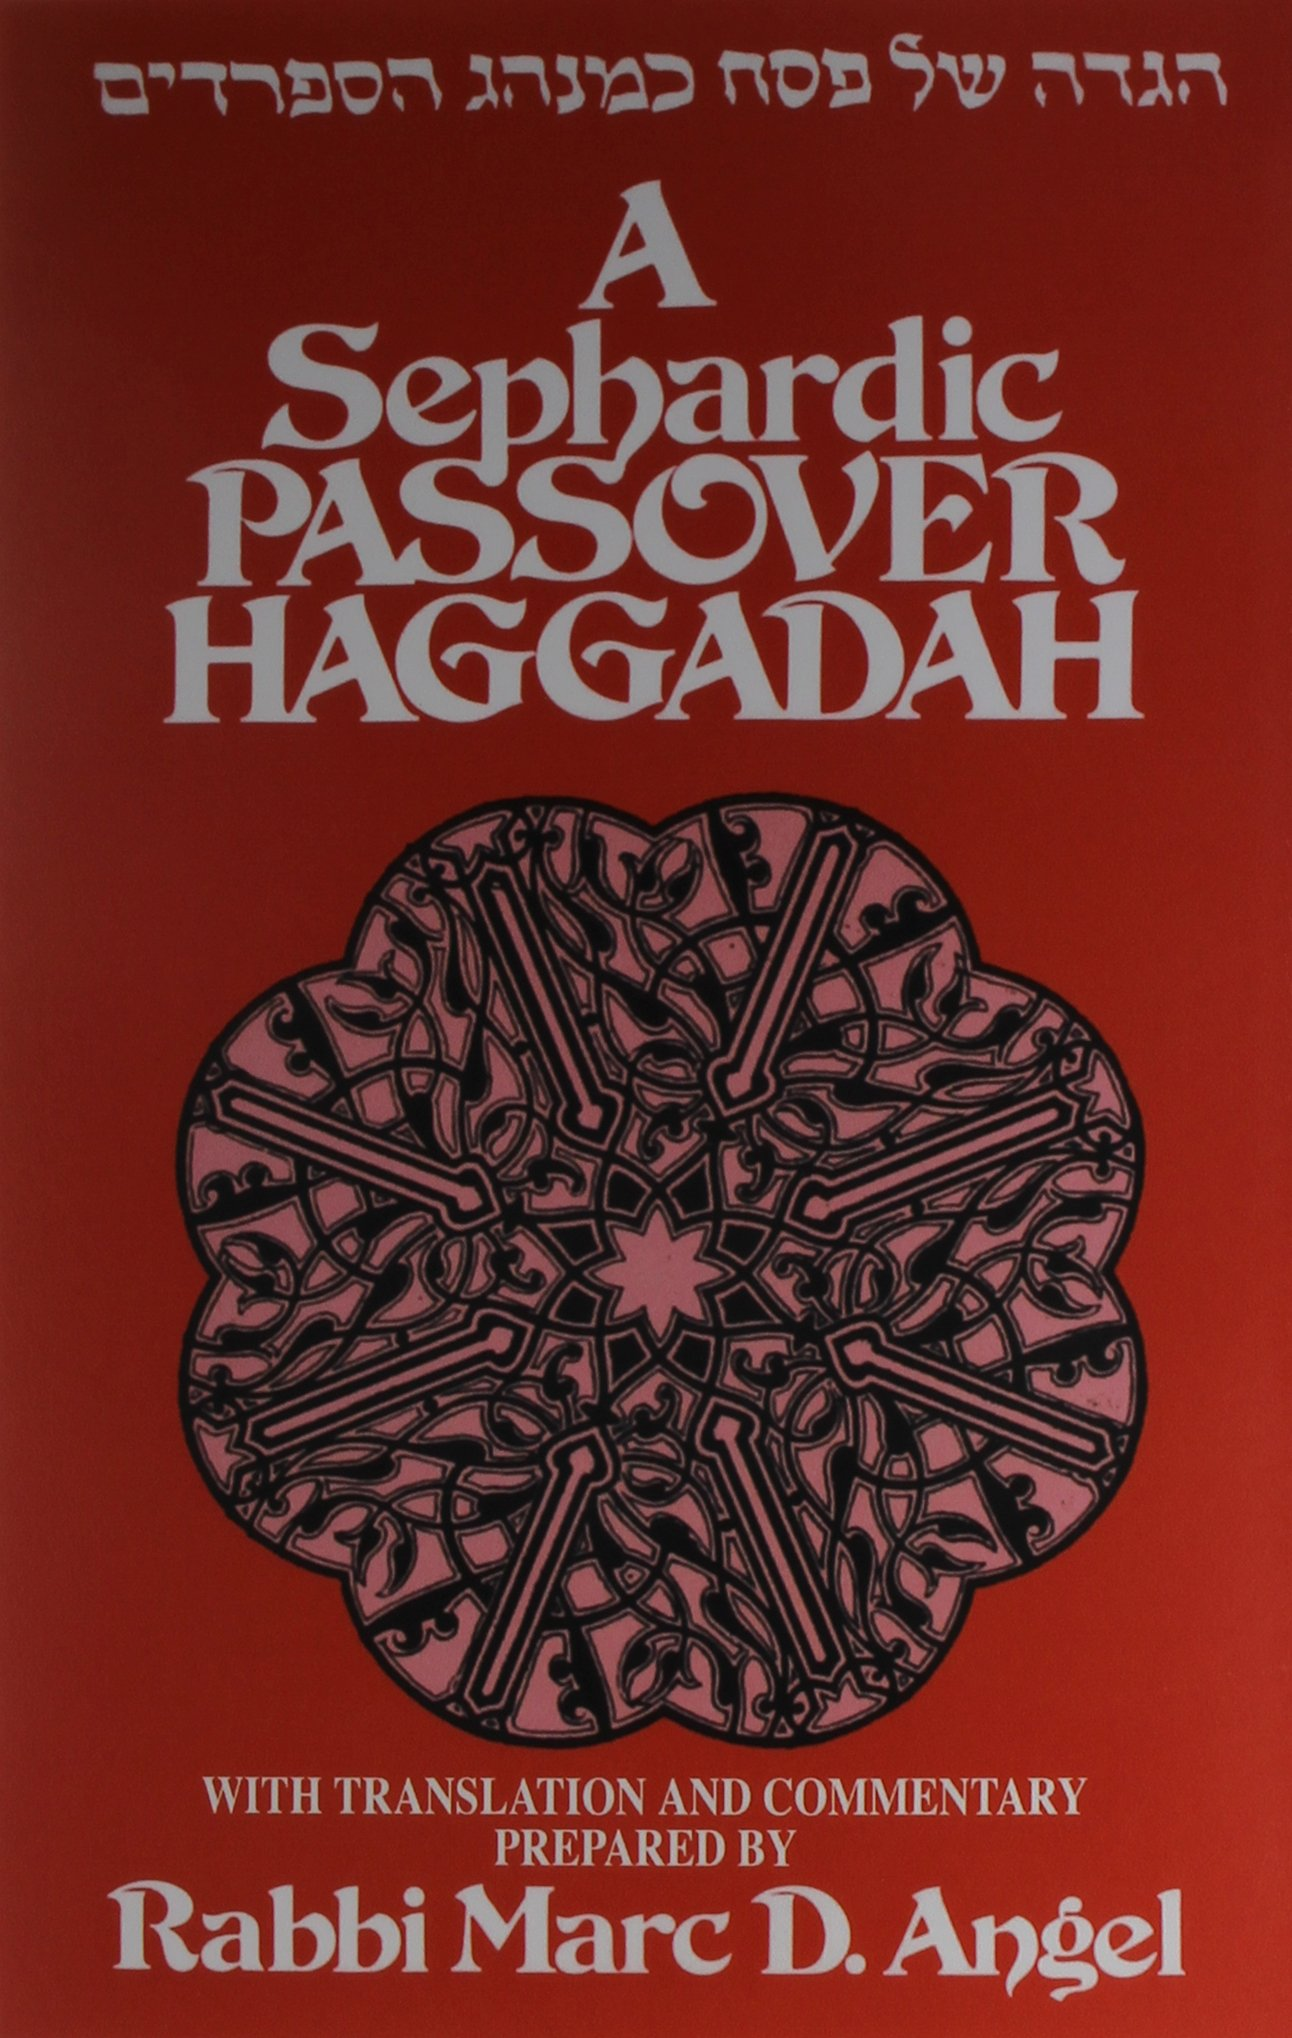 A Sephardic Passover Haggadah: With Translation and Commentary (English,  Ladino and Hebrew Edition): Marc D. Angel: 9780881251456: Amazon.com: Books